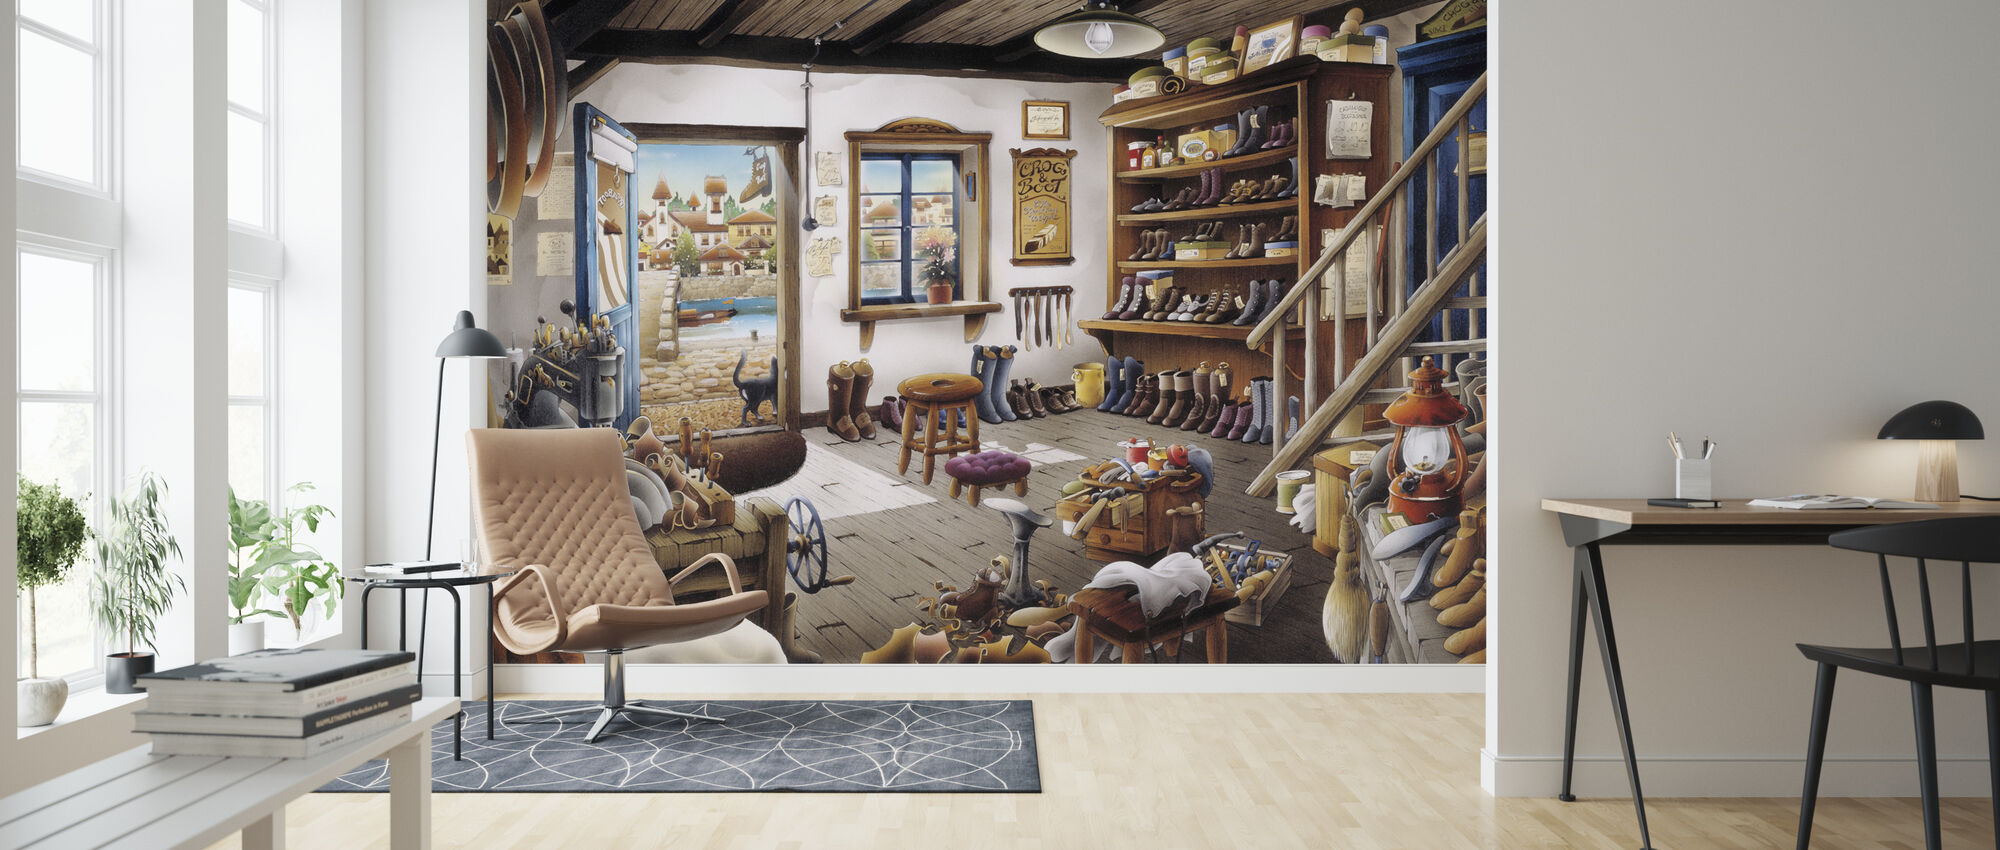 The Cobbler Shop - Wallpaper - Living Room